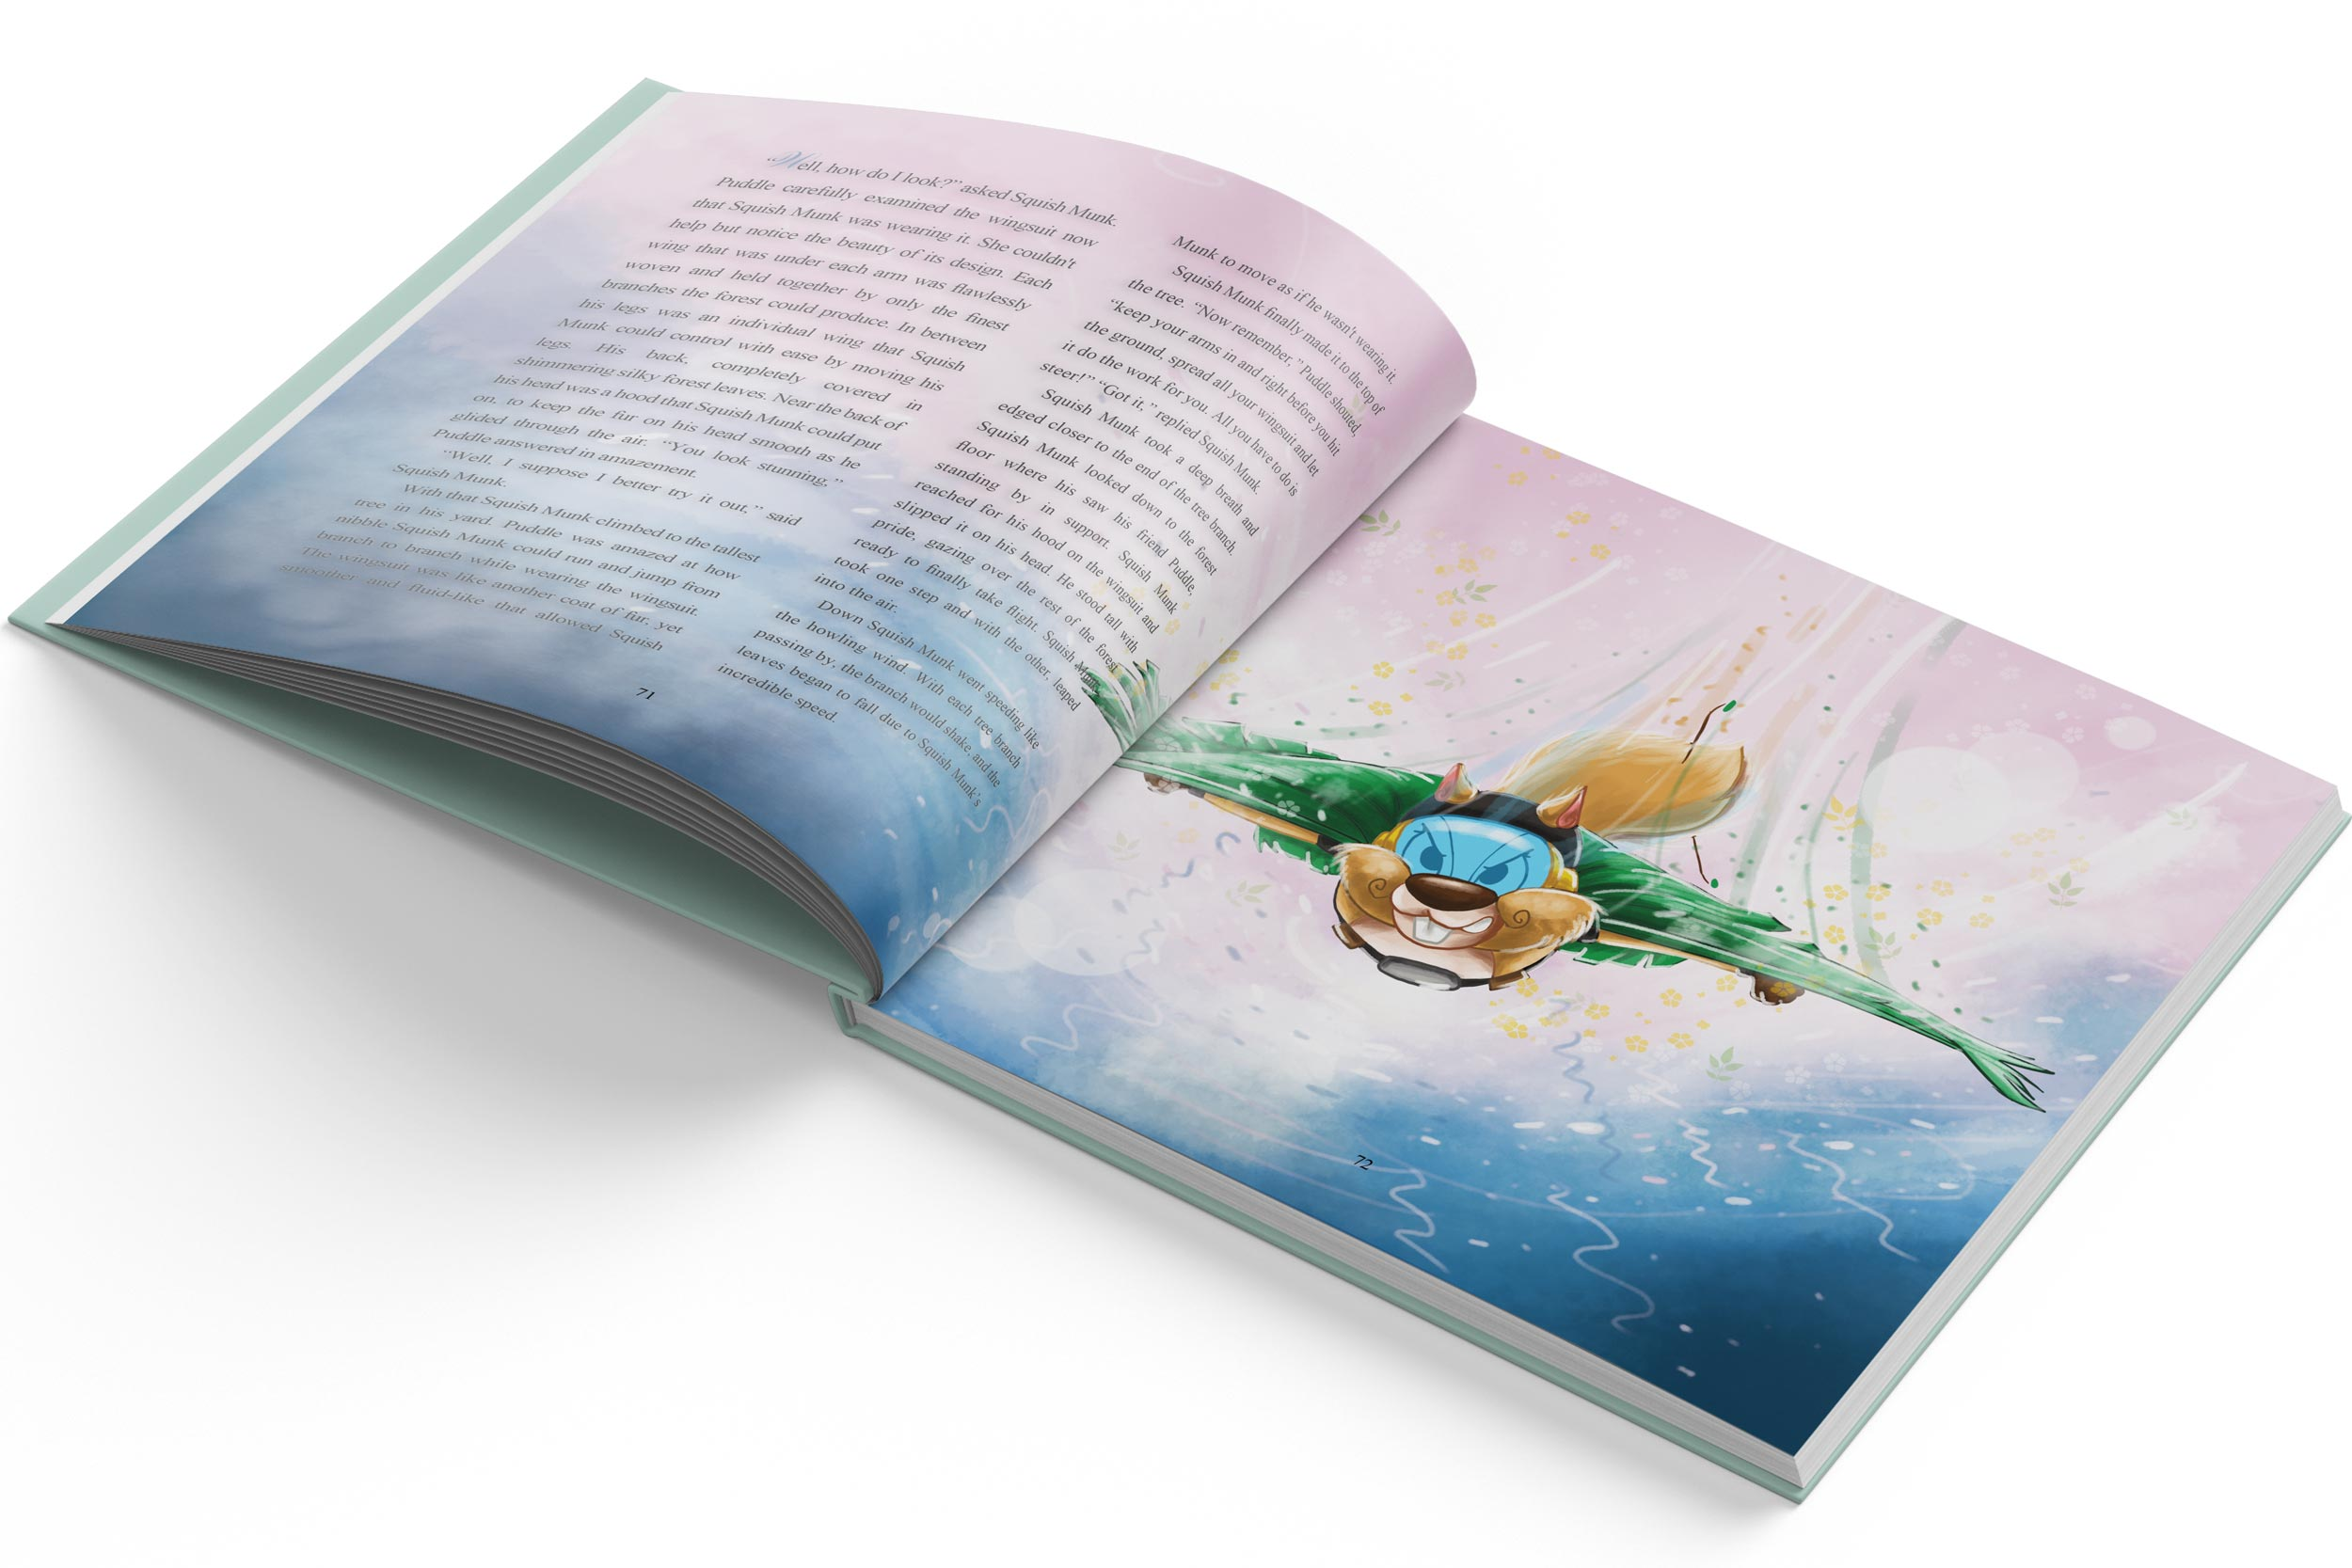 journey-of-puddle-christian-illustrated-children-books-book-2-look-inside-page-2.jpg